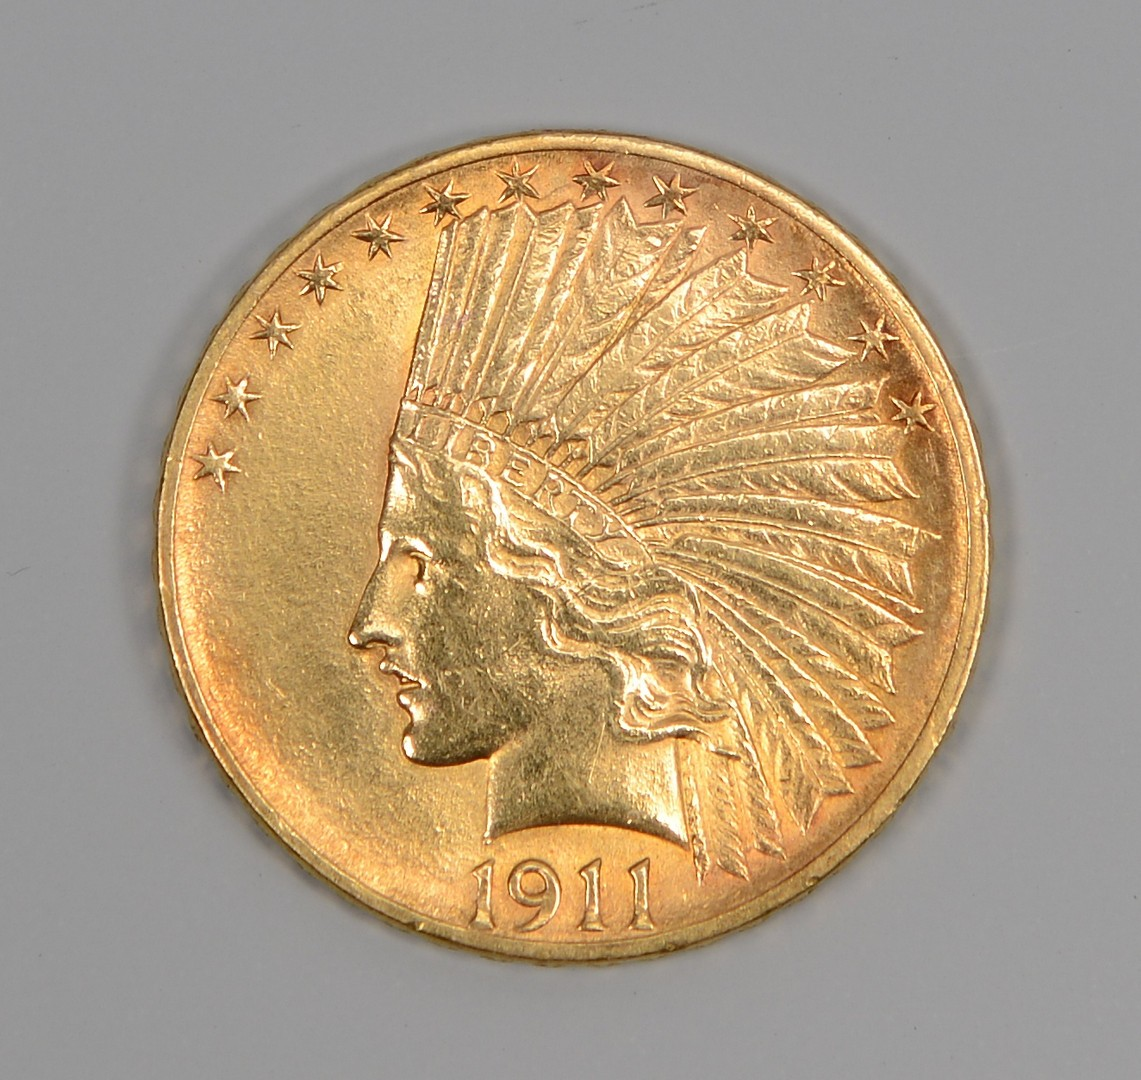 Lot 860: 1911 US $10 Indian Head Gold Coin